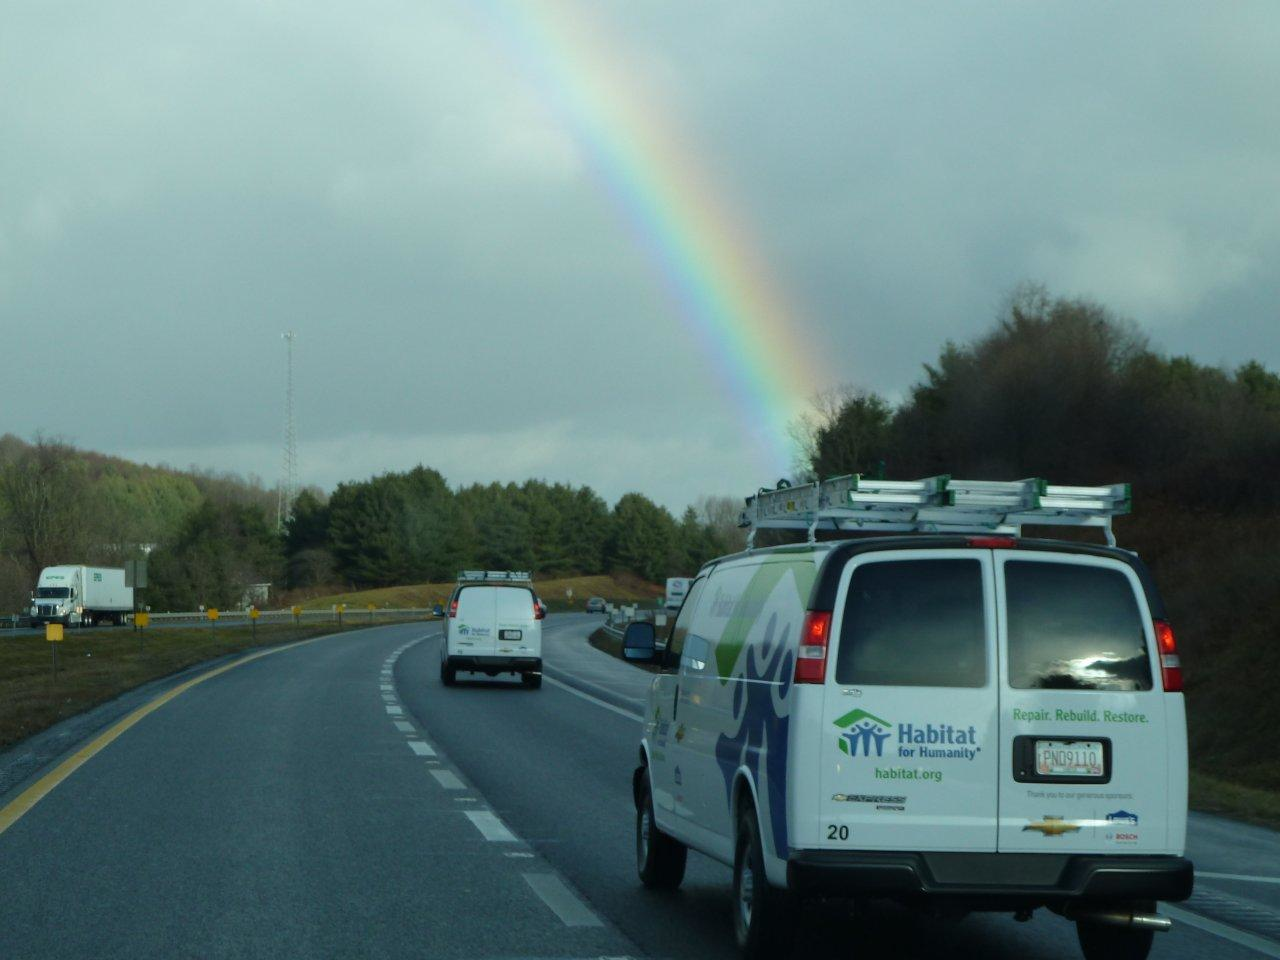 The Habitat for Humanity caravan to assist Hurricane Sandy encounters a rainbow en route to help homeowners with repairs in New York and New Jersey. (Photo by Patricia Decker)